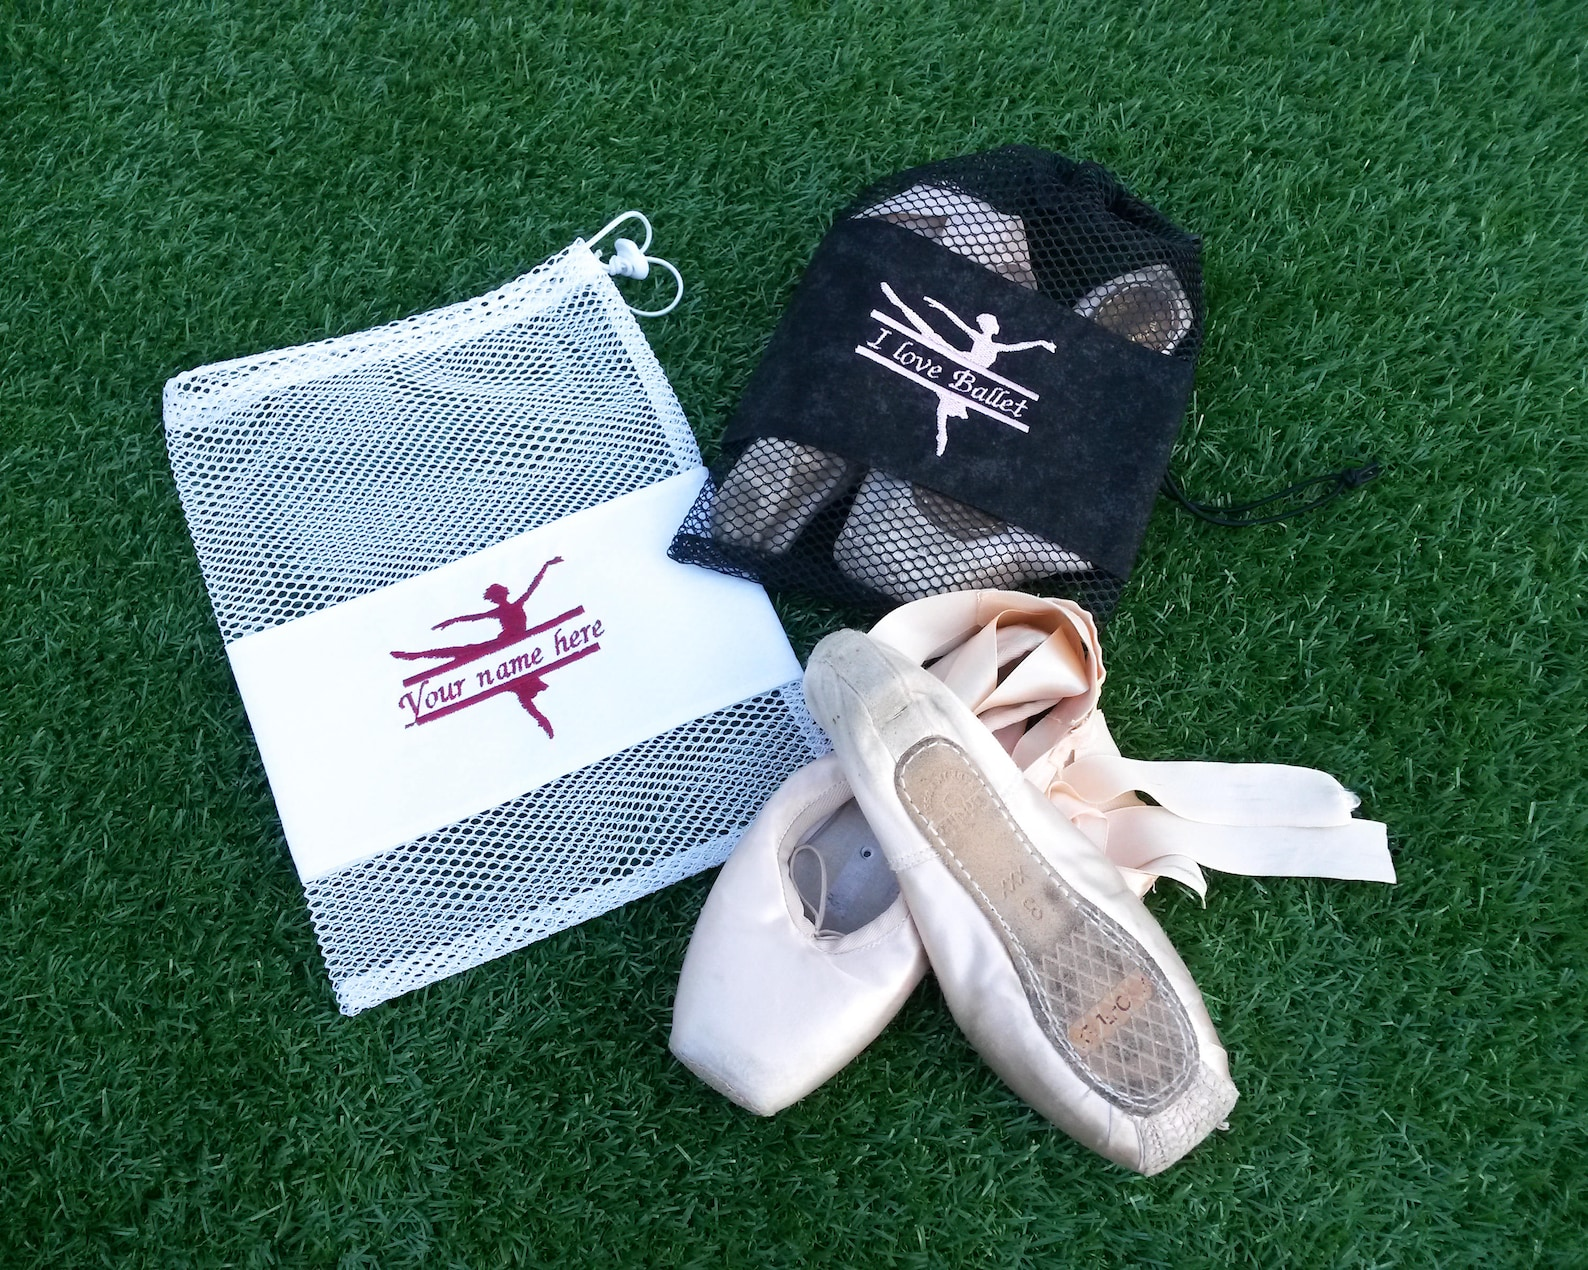 personalised ballet shoe bag, pointe shoe bag, drawstring dance bag, bright mesh bag, embroidered ballerina with name, gift for